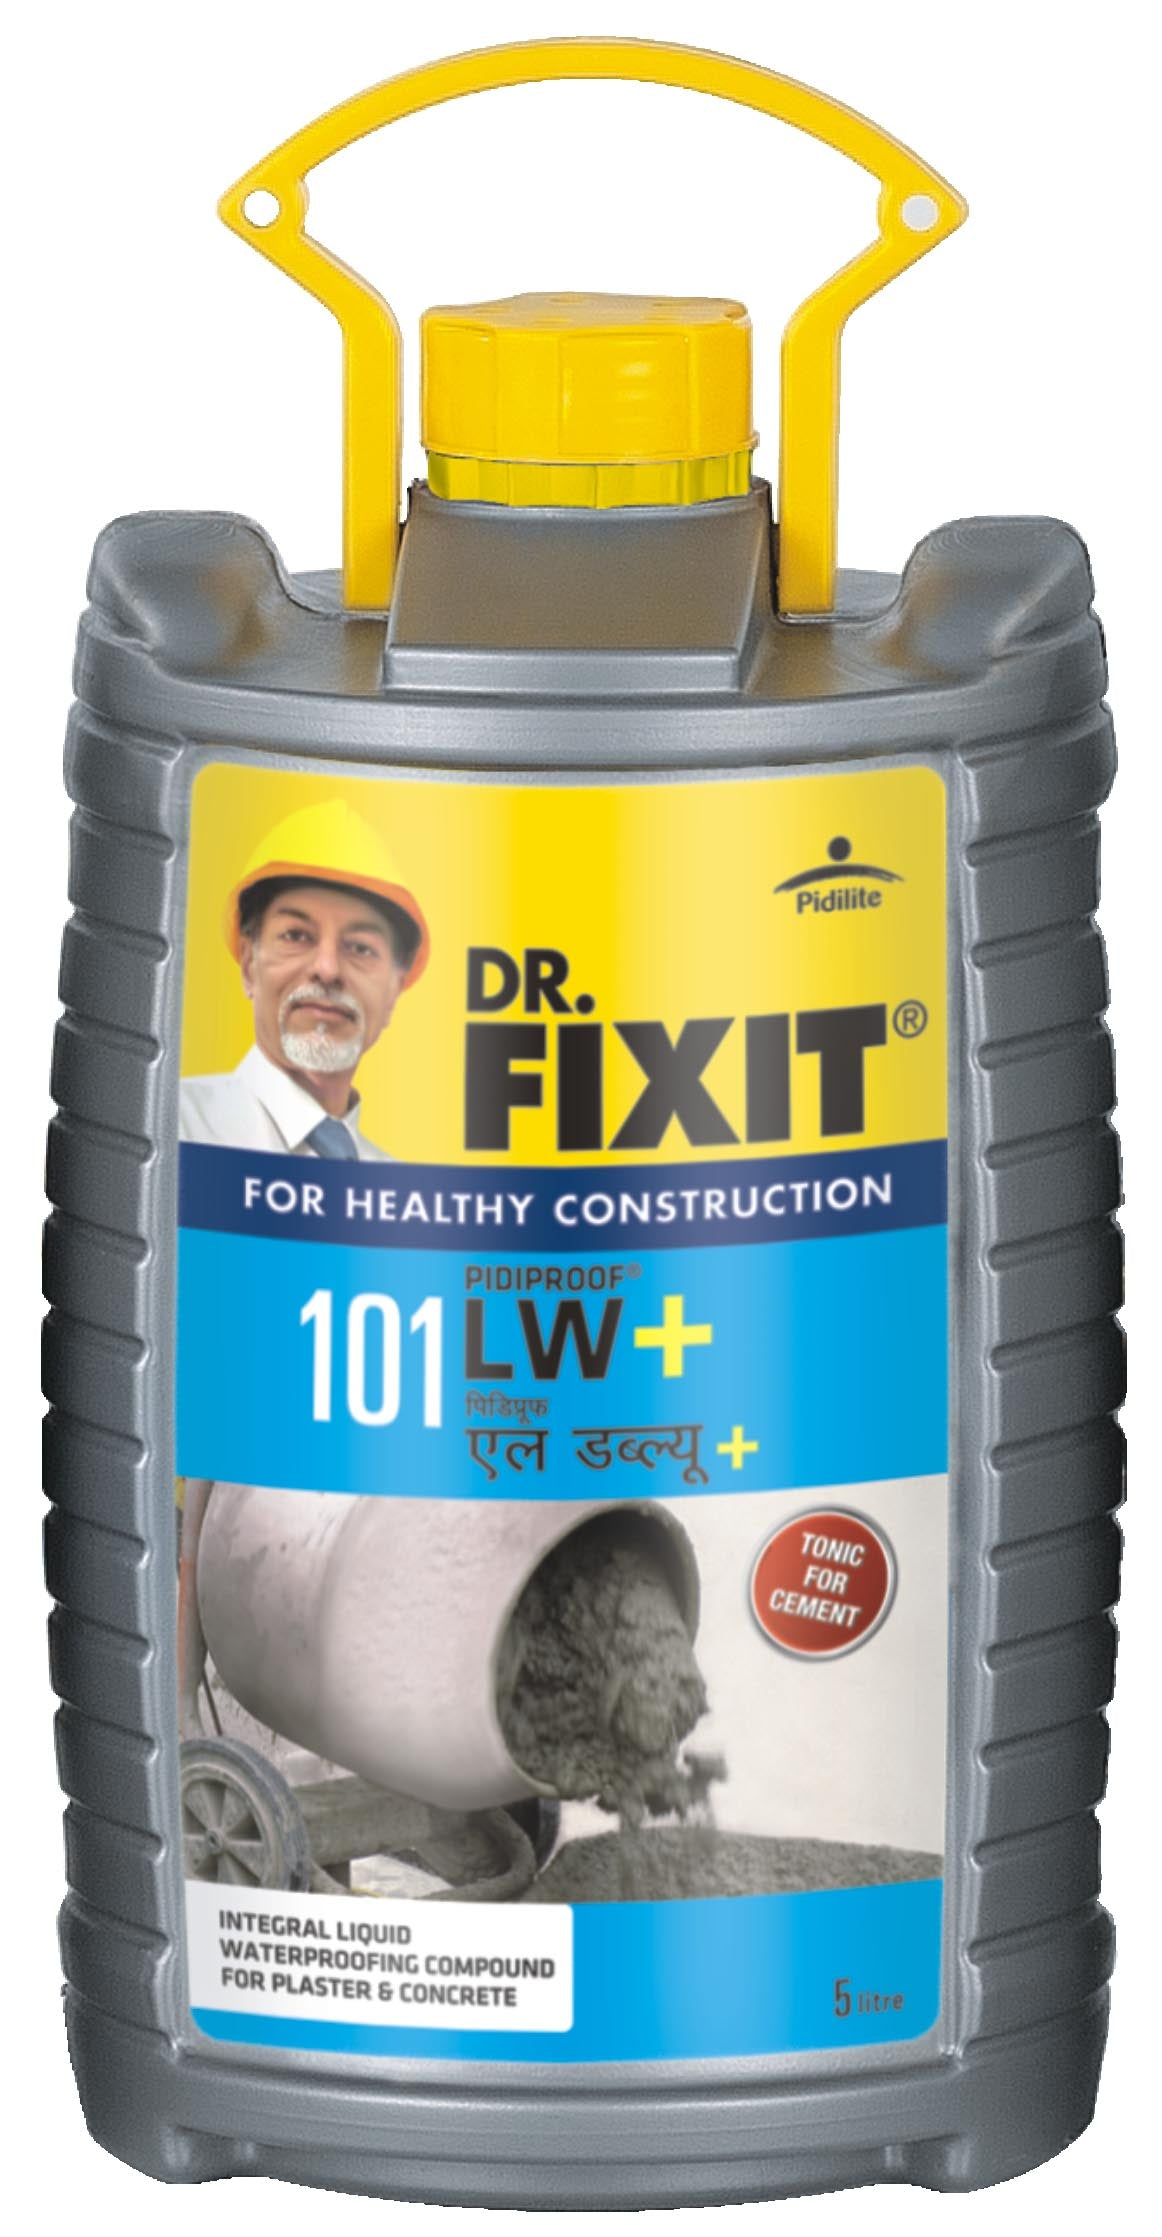 How To Use Dr Fixit Waterproofing Liquid Areas Of Applications Hindustan Steel Suppliers